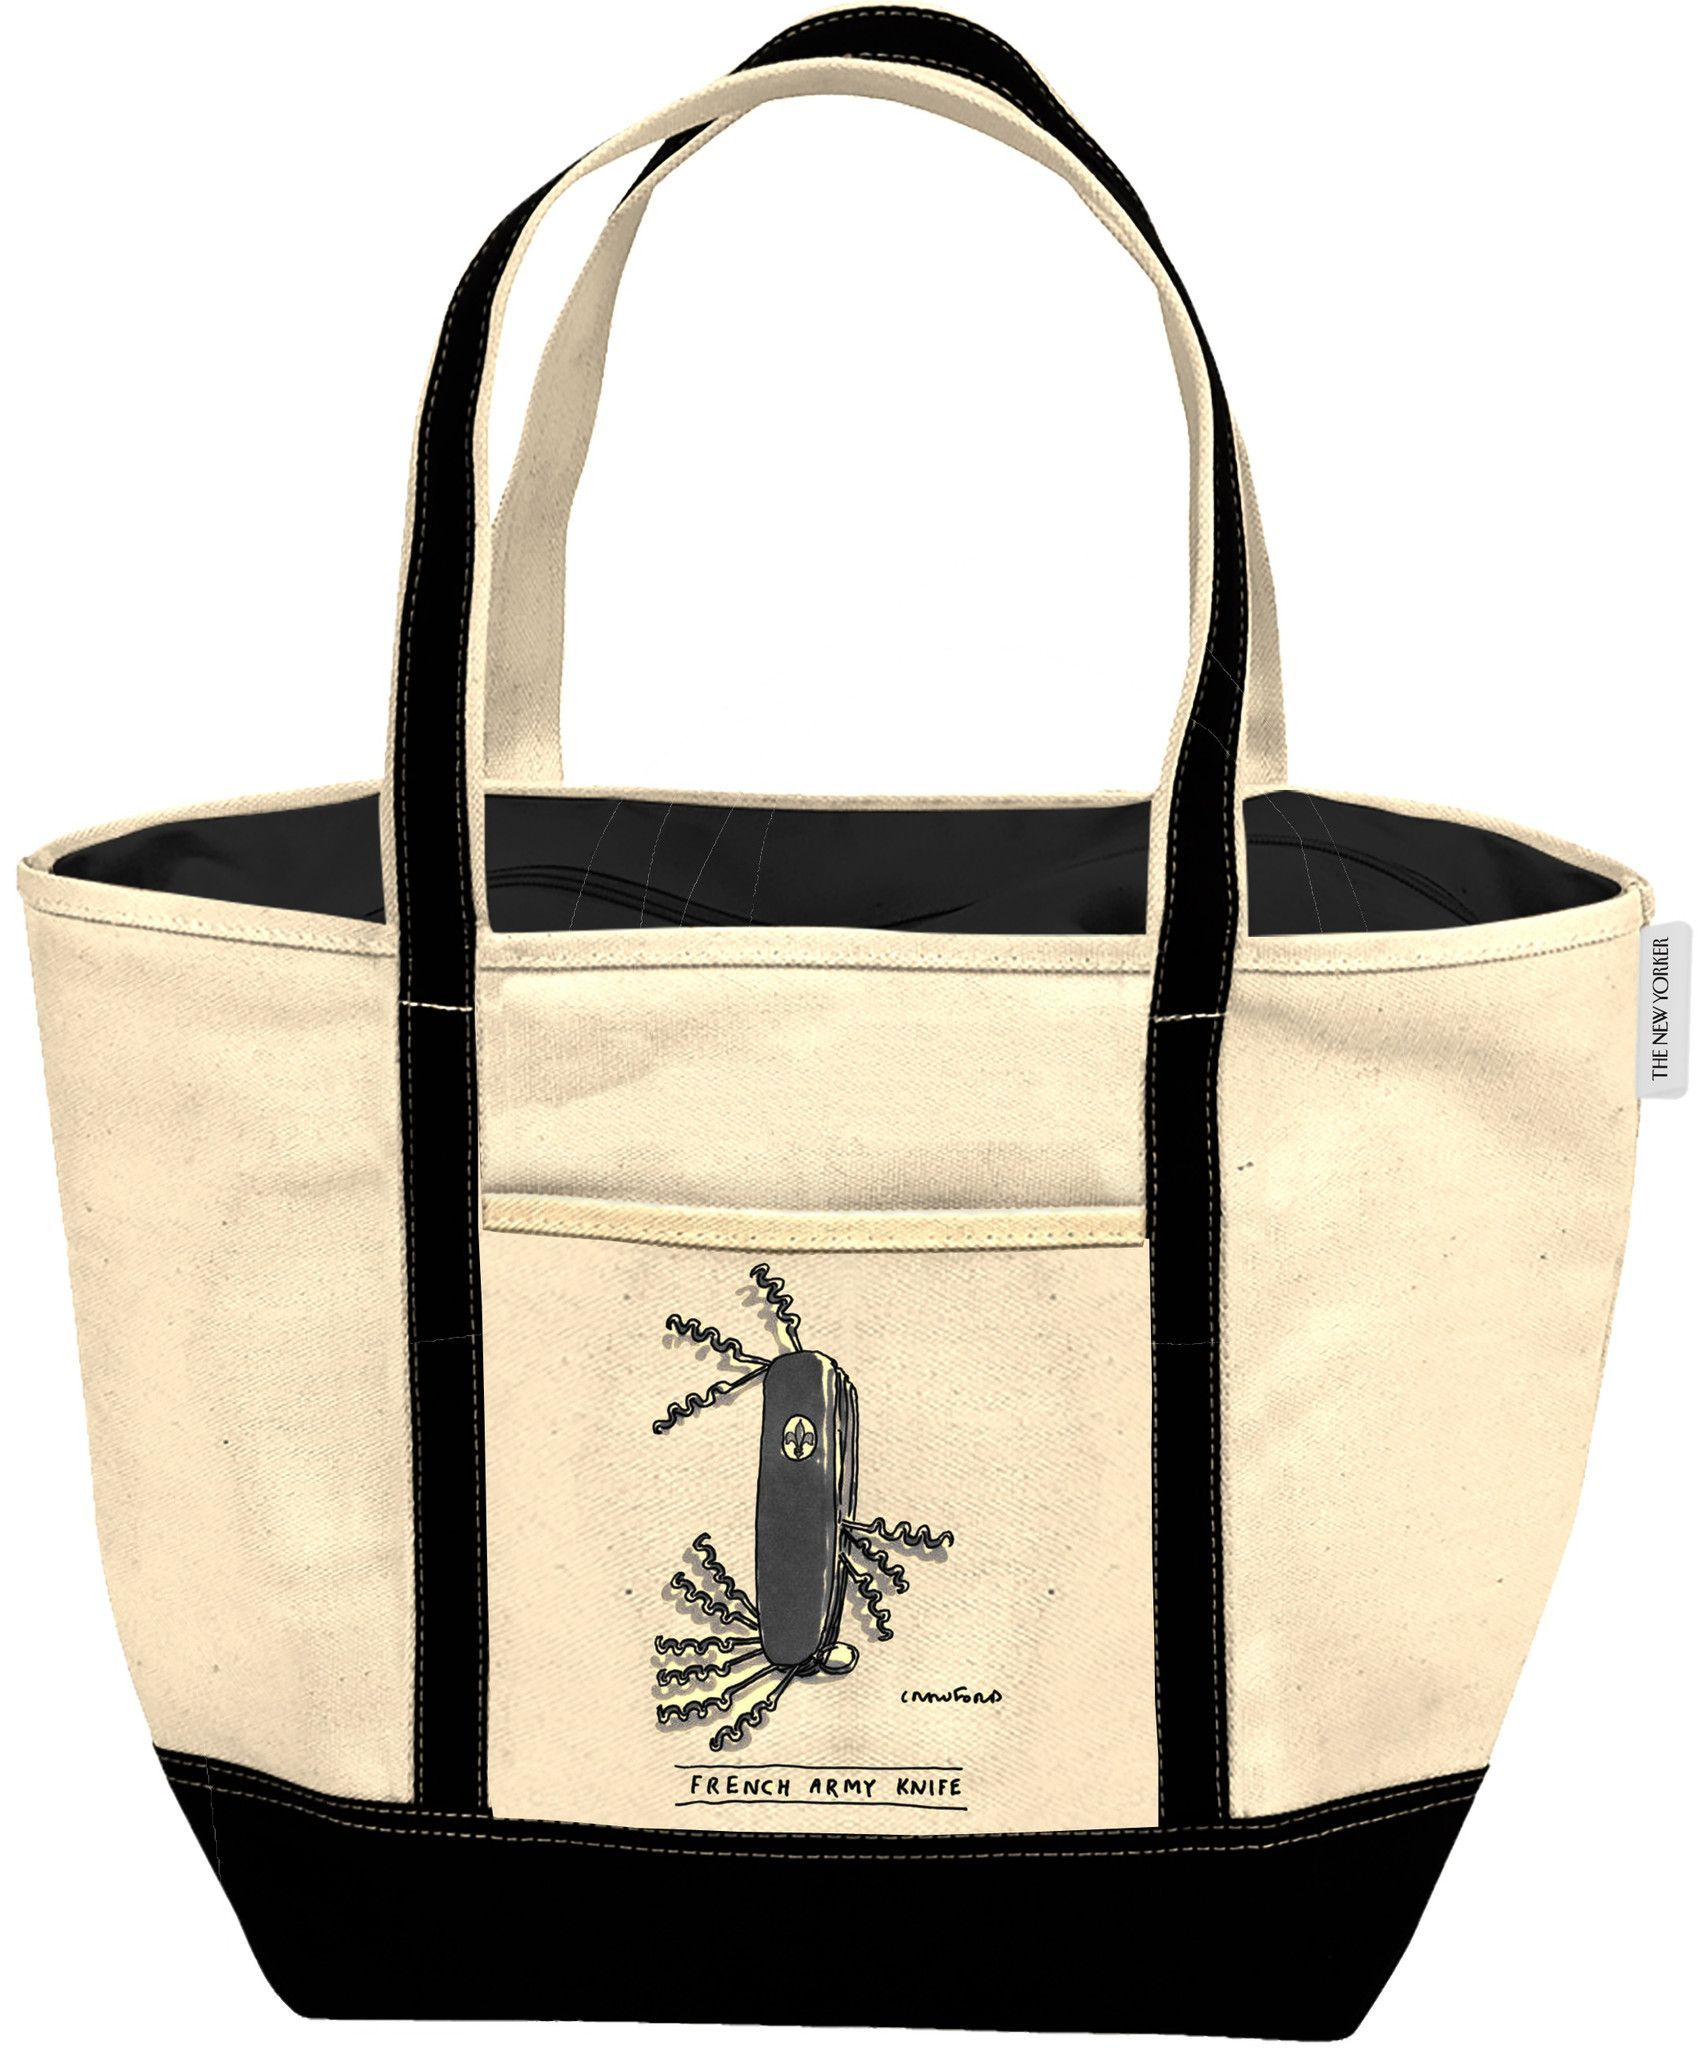 French Army Knife Tote   Dog tote, Tote bag, Tote